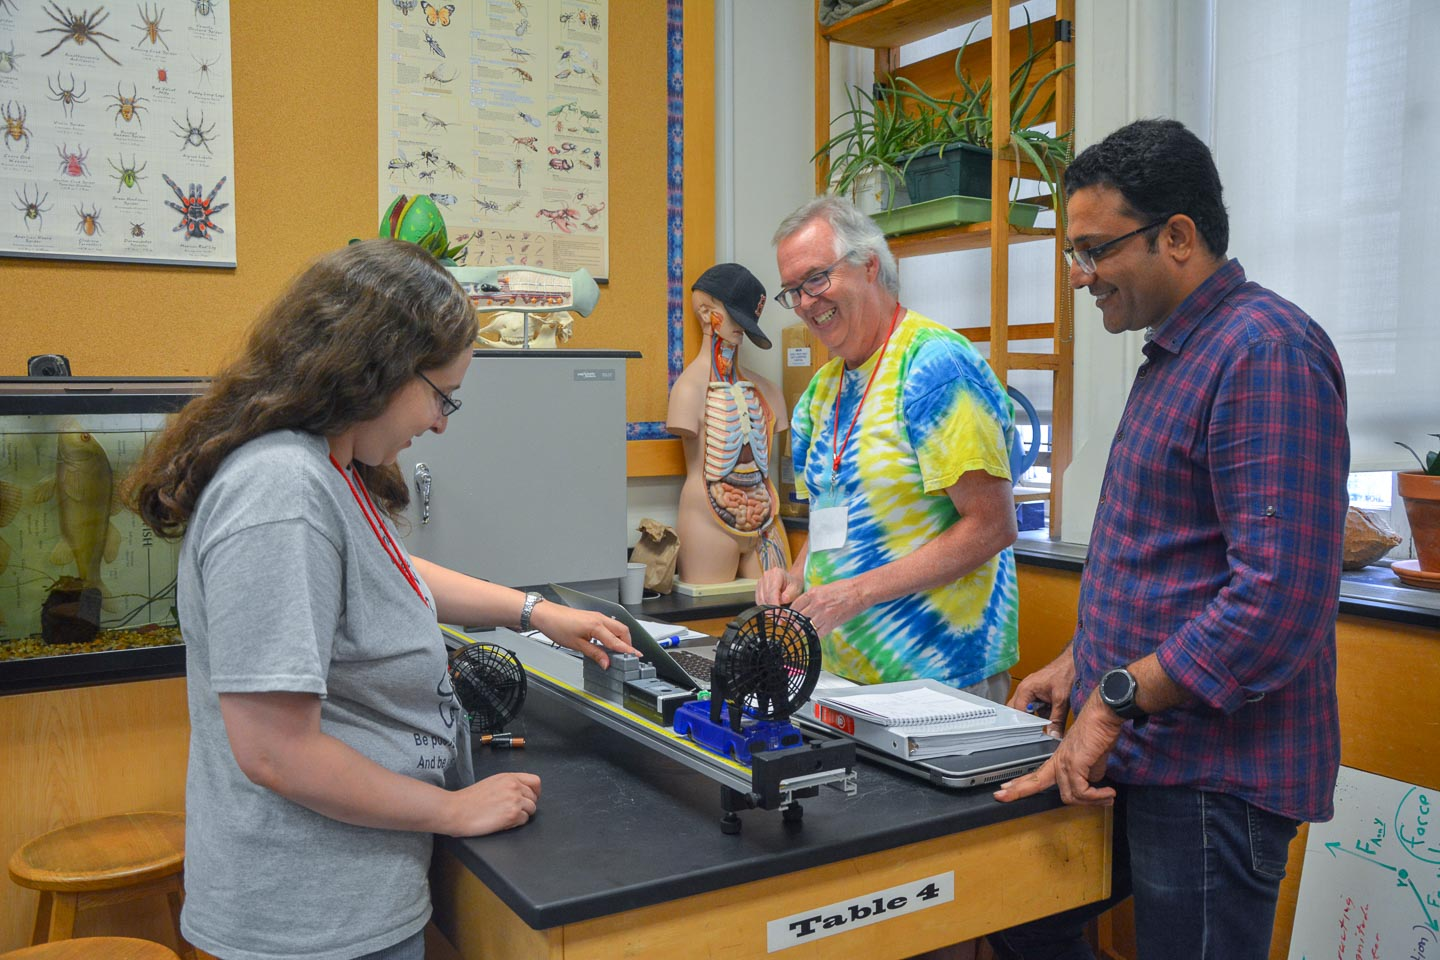 Discover STEM: Looking into the Teacher World as a Student